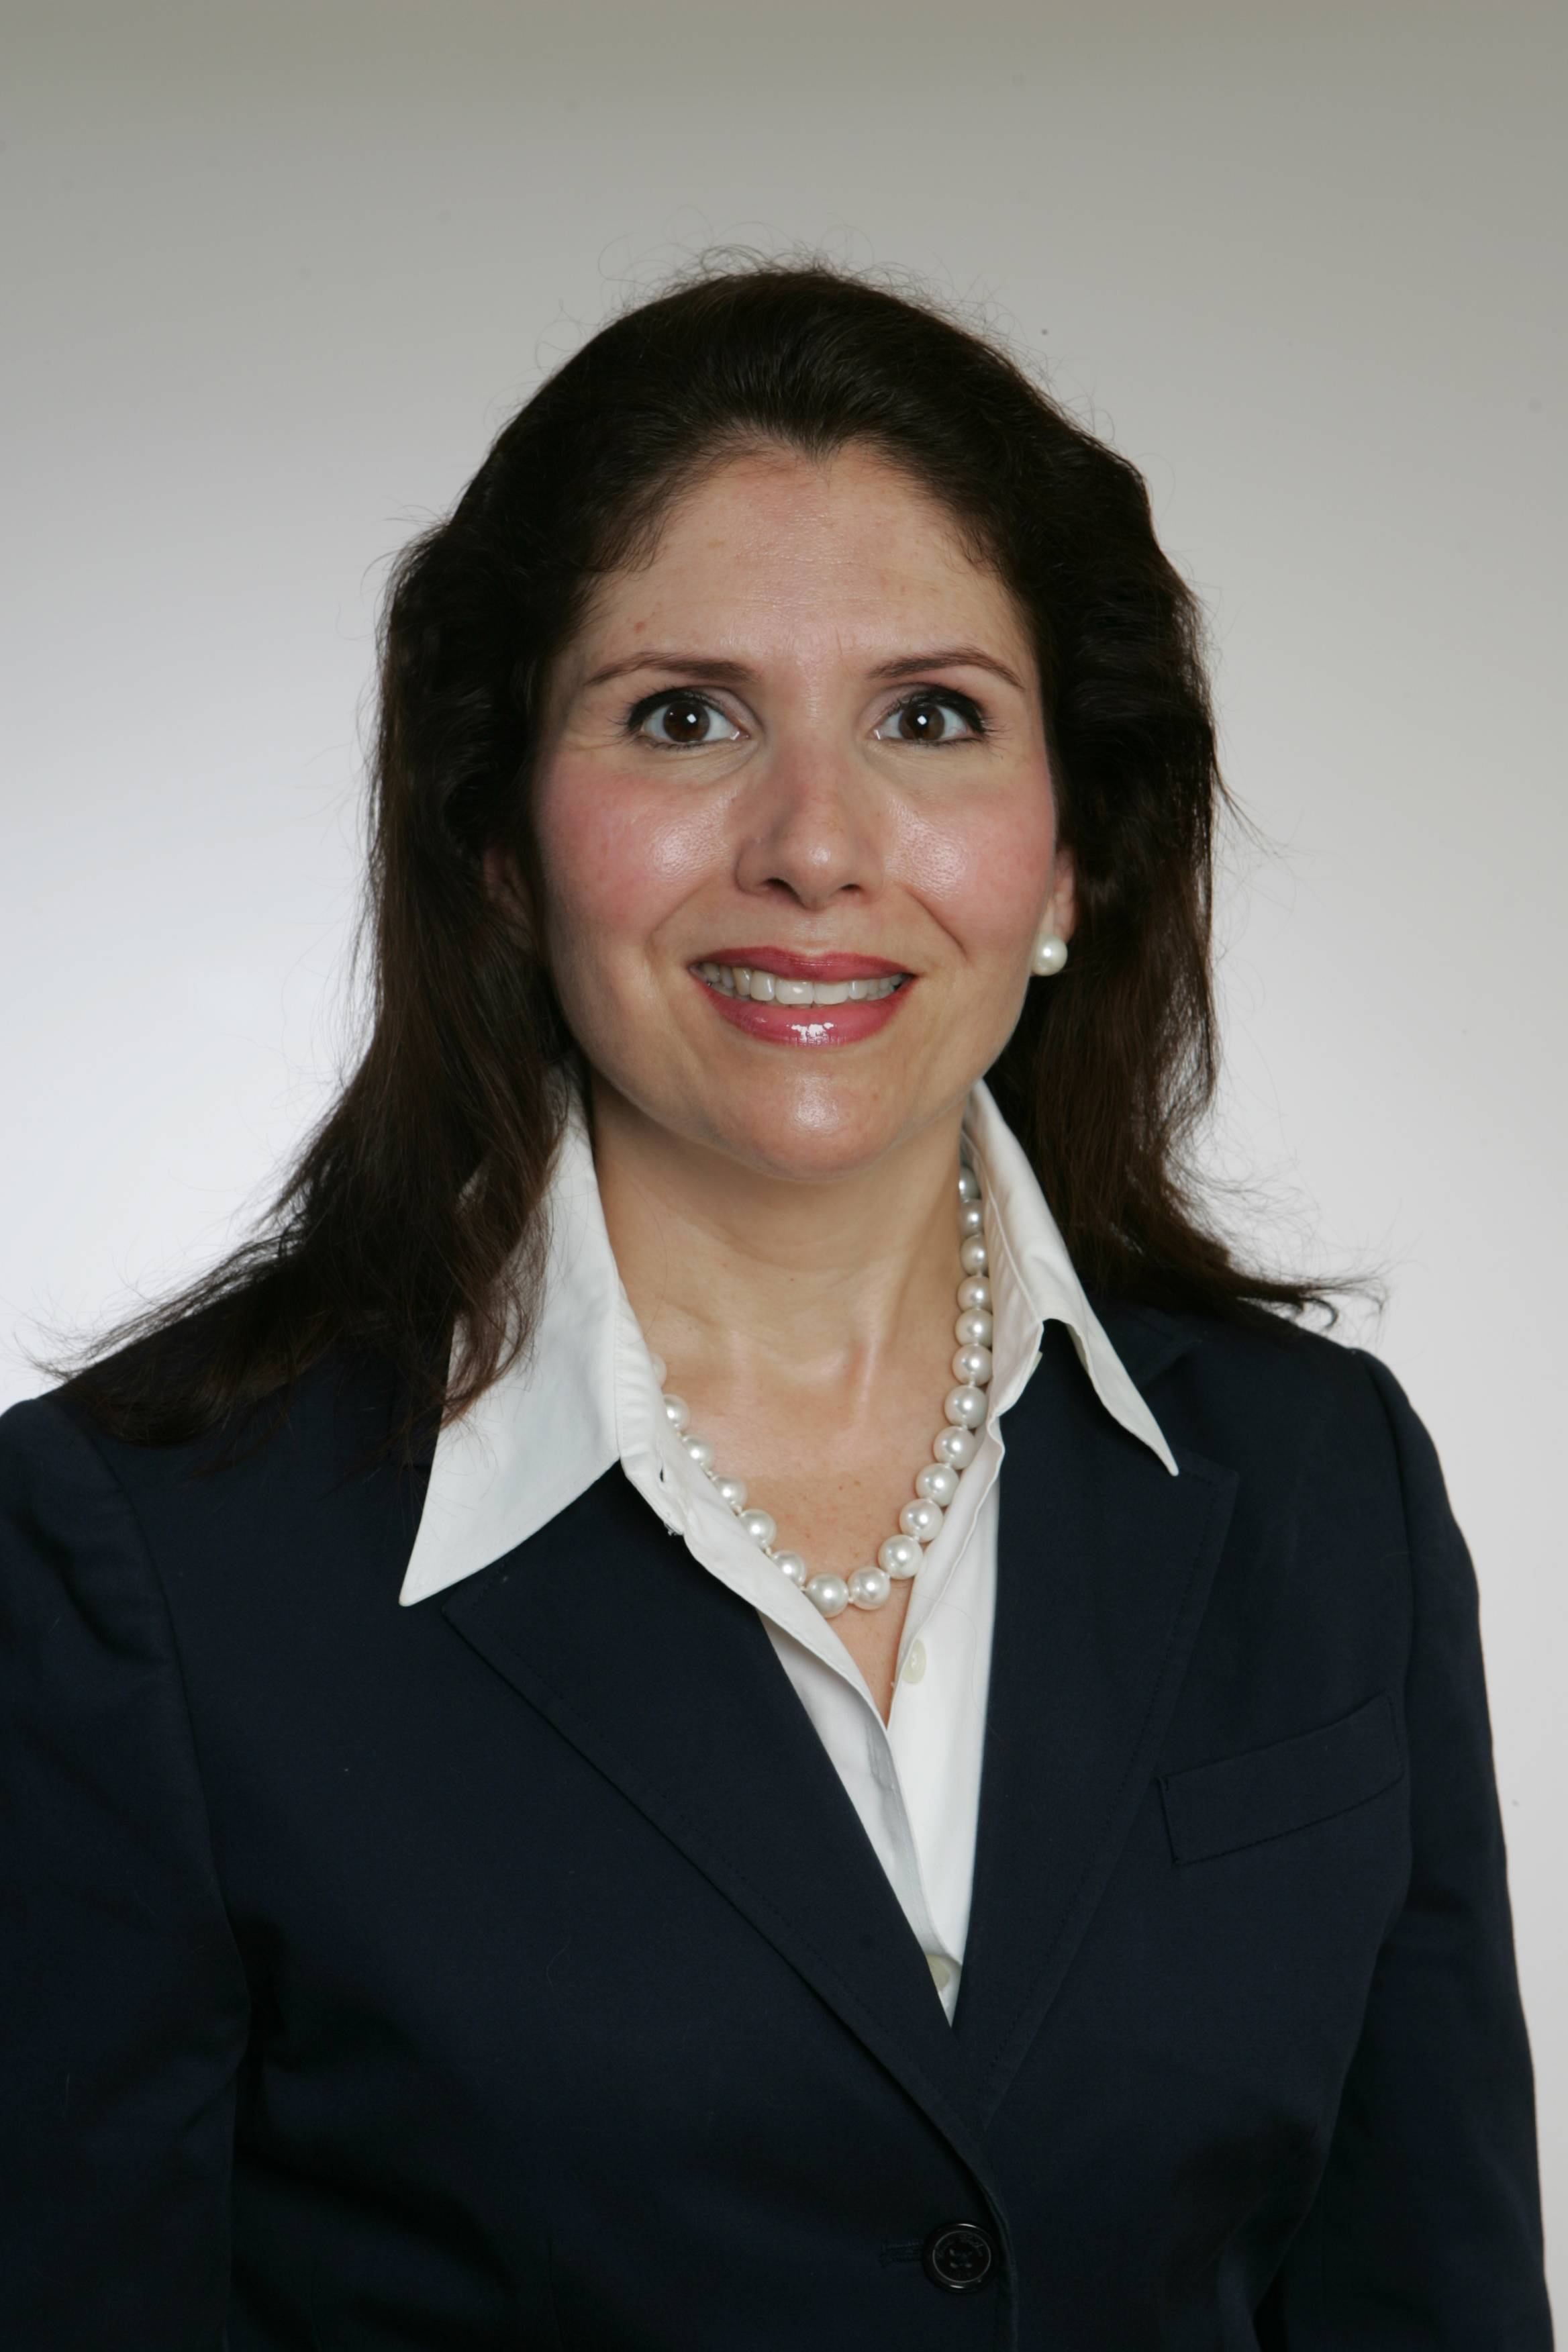 Evelyn Pacino Sanguinetti, running for Wheaton City council